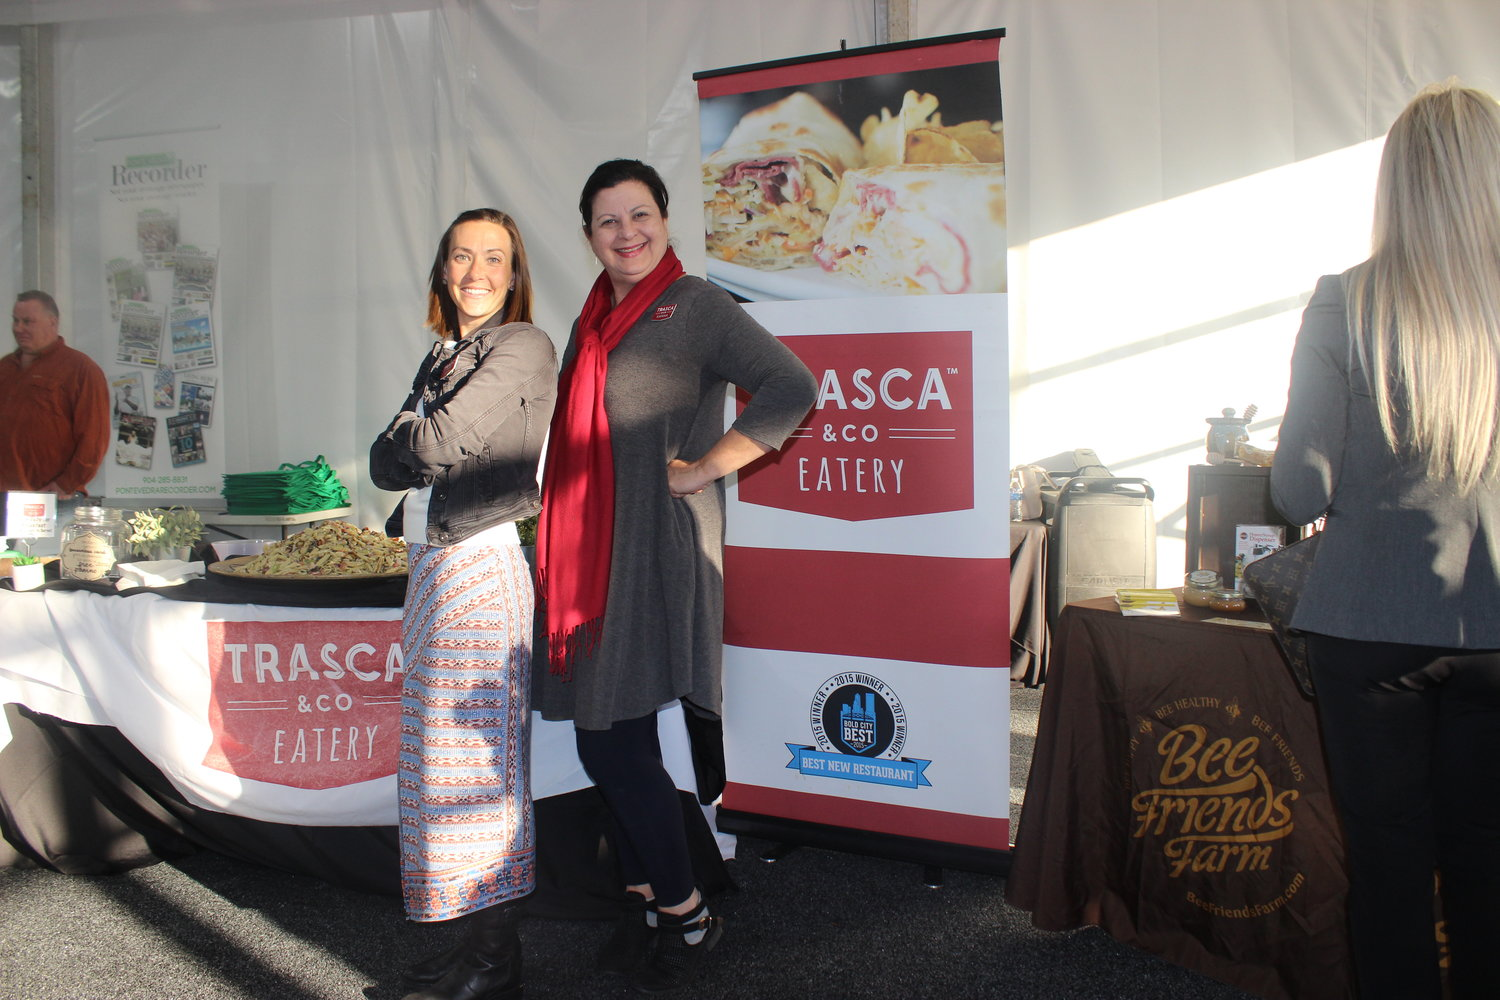 The Trasca & Co Eatery team